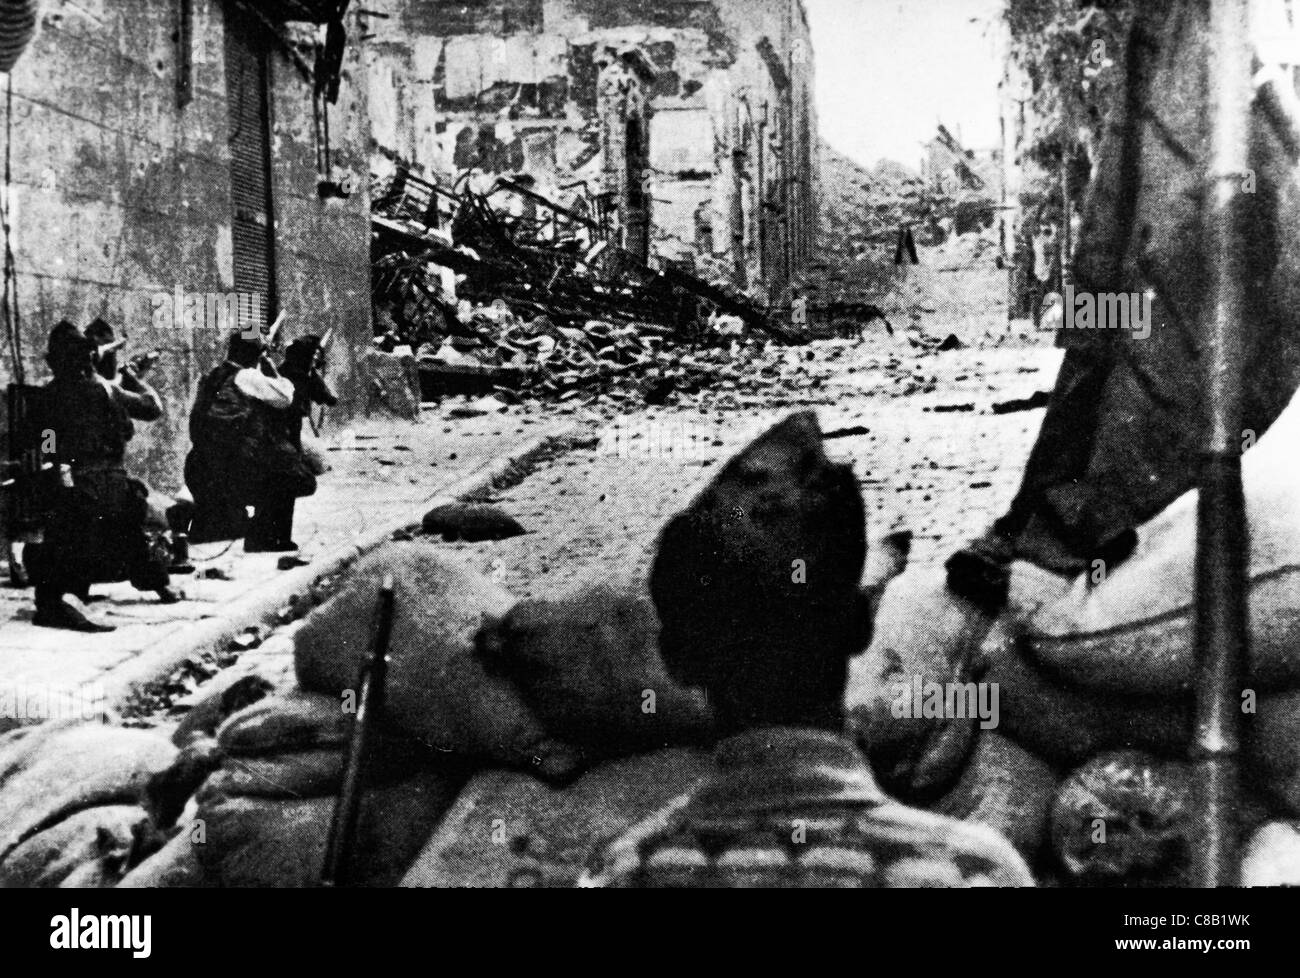 Alcazar siege of Toledo,the Spanish Civil War,1936 - Stock Image